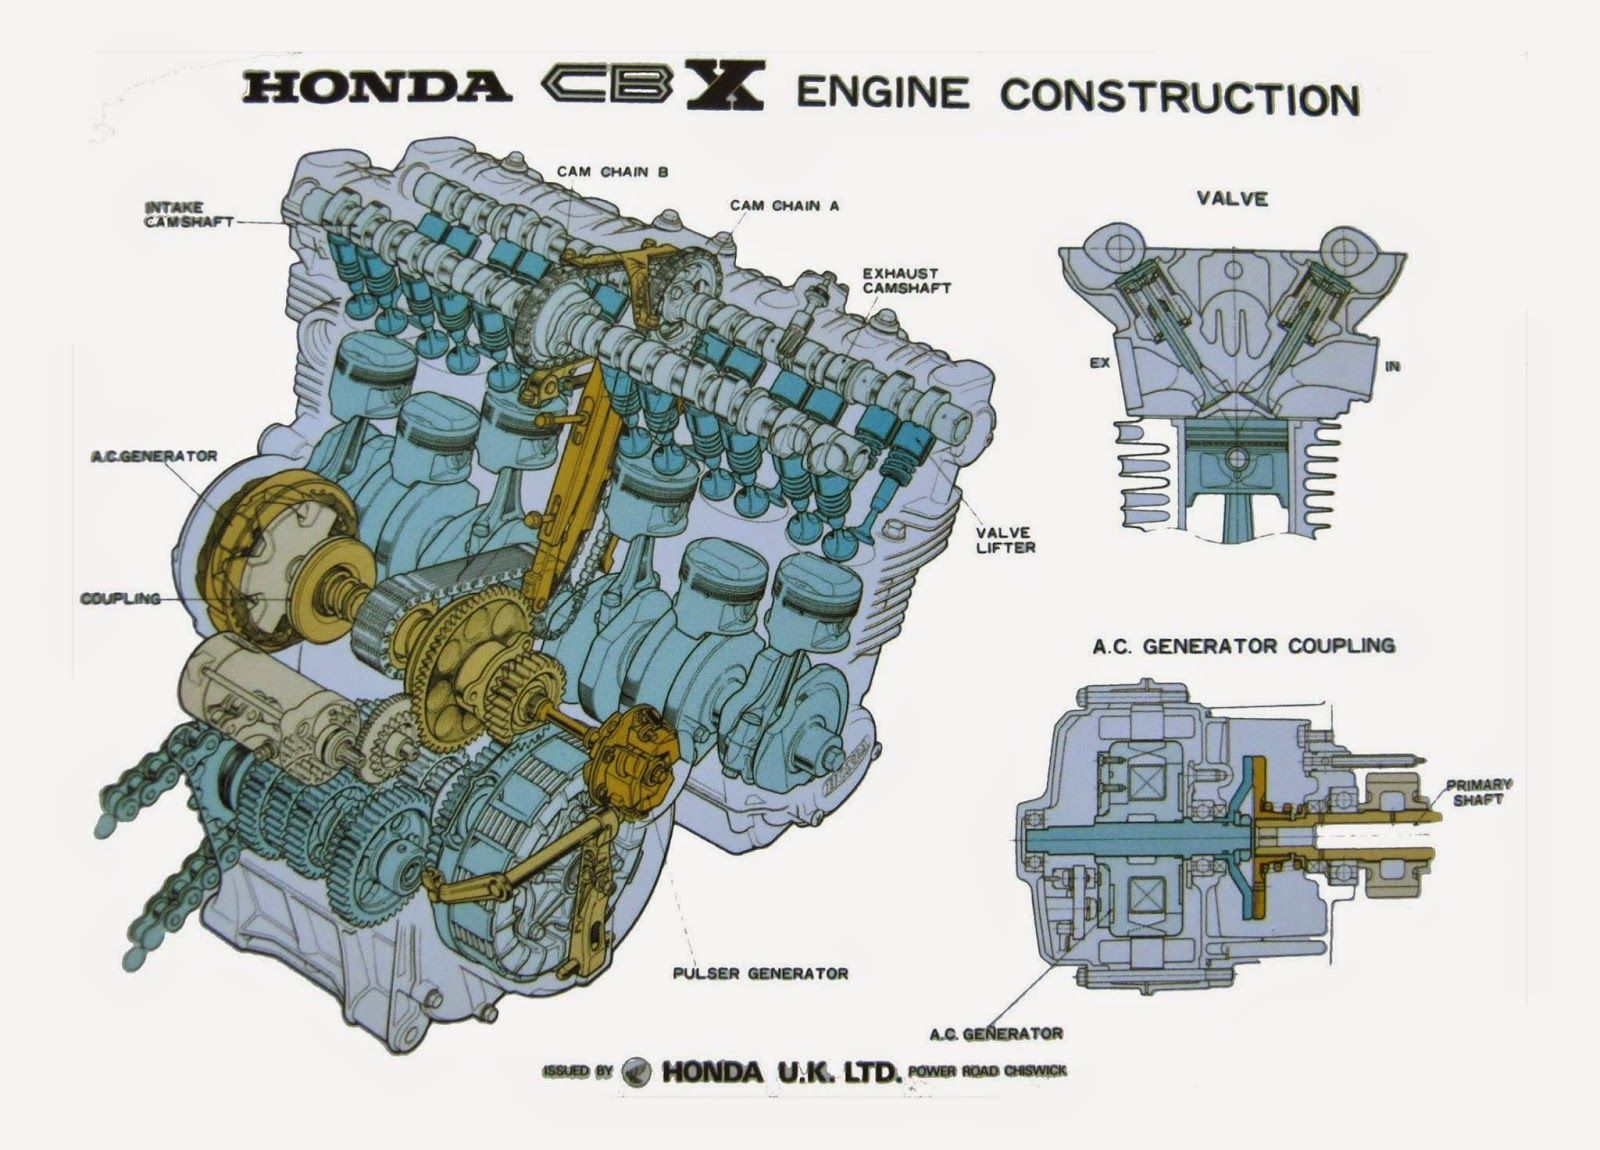 a180b90f3854c82f32e17e360e175da7 racing caf� honda cbx engine diagram machines pinterest cb750 engine diagram at alyssarenee.co